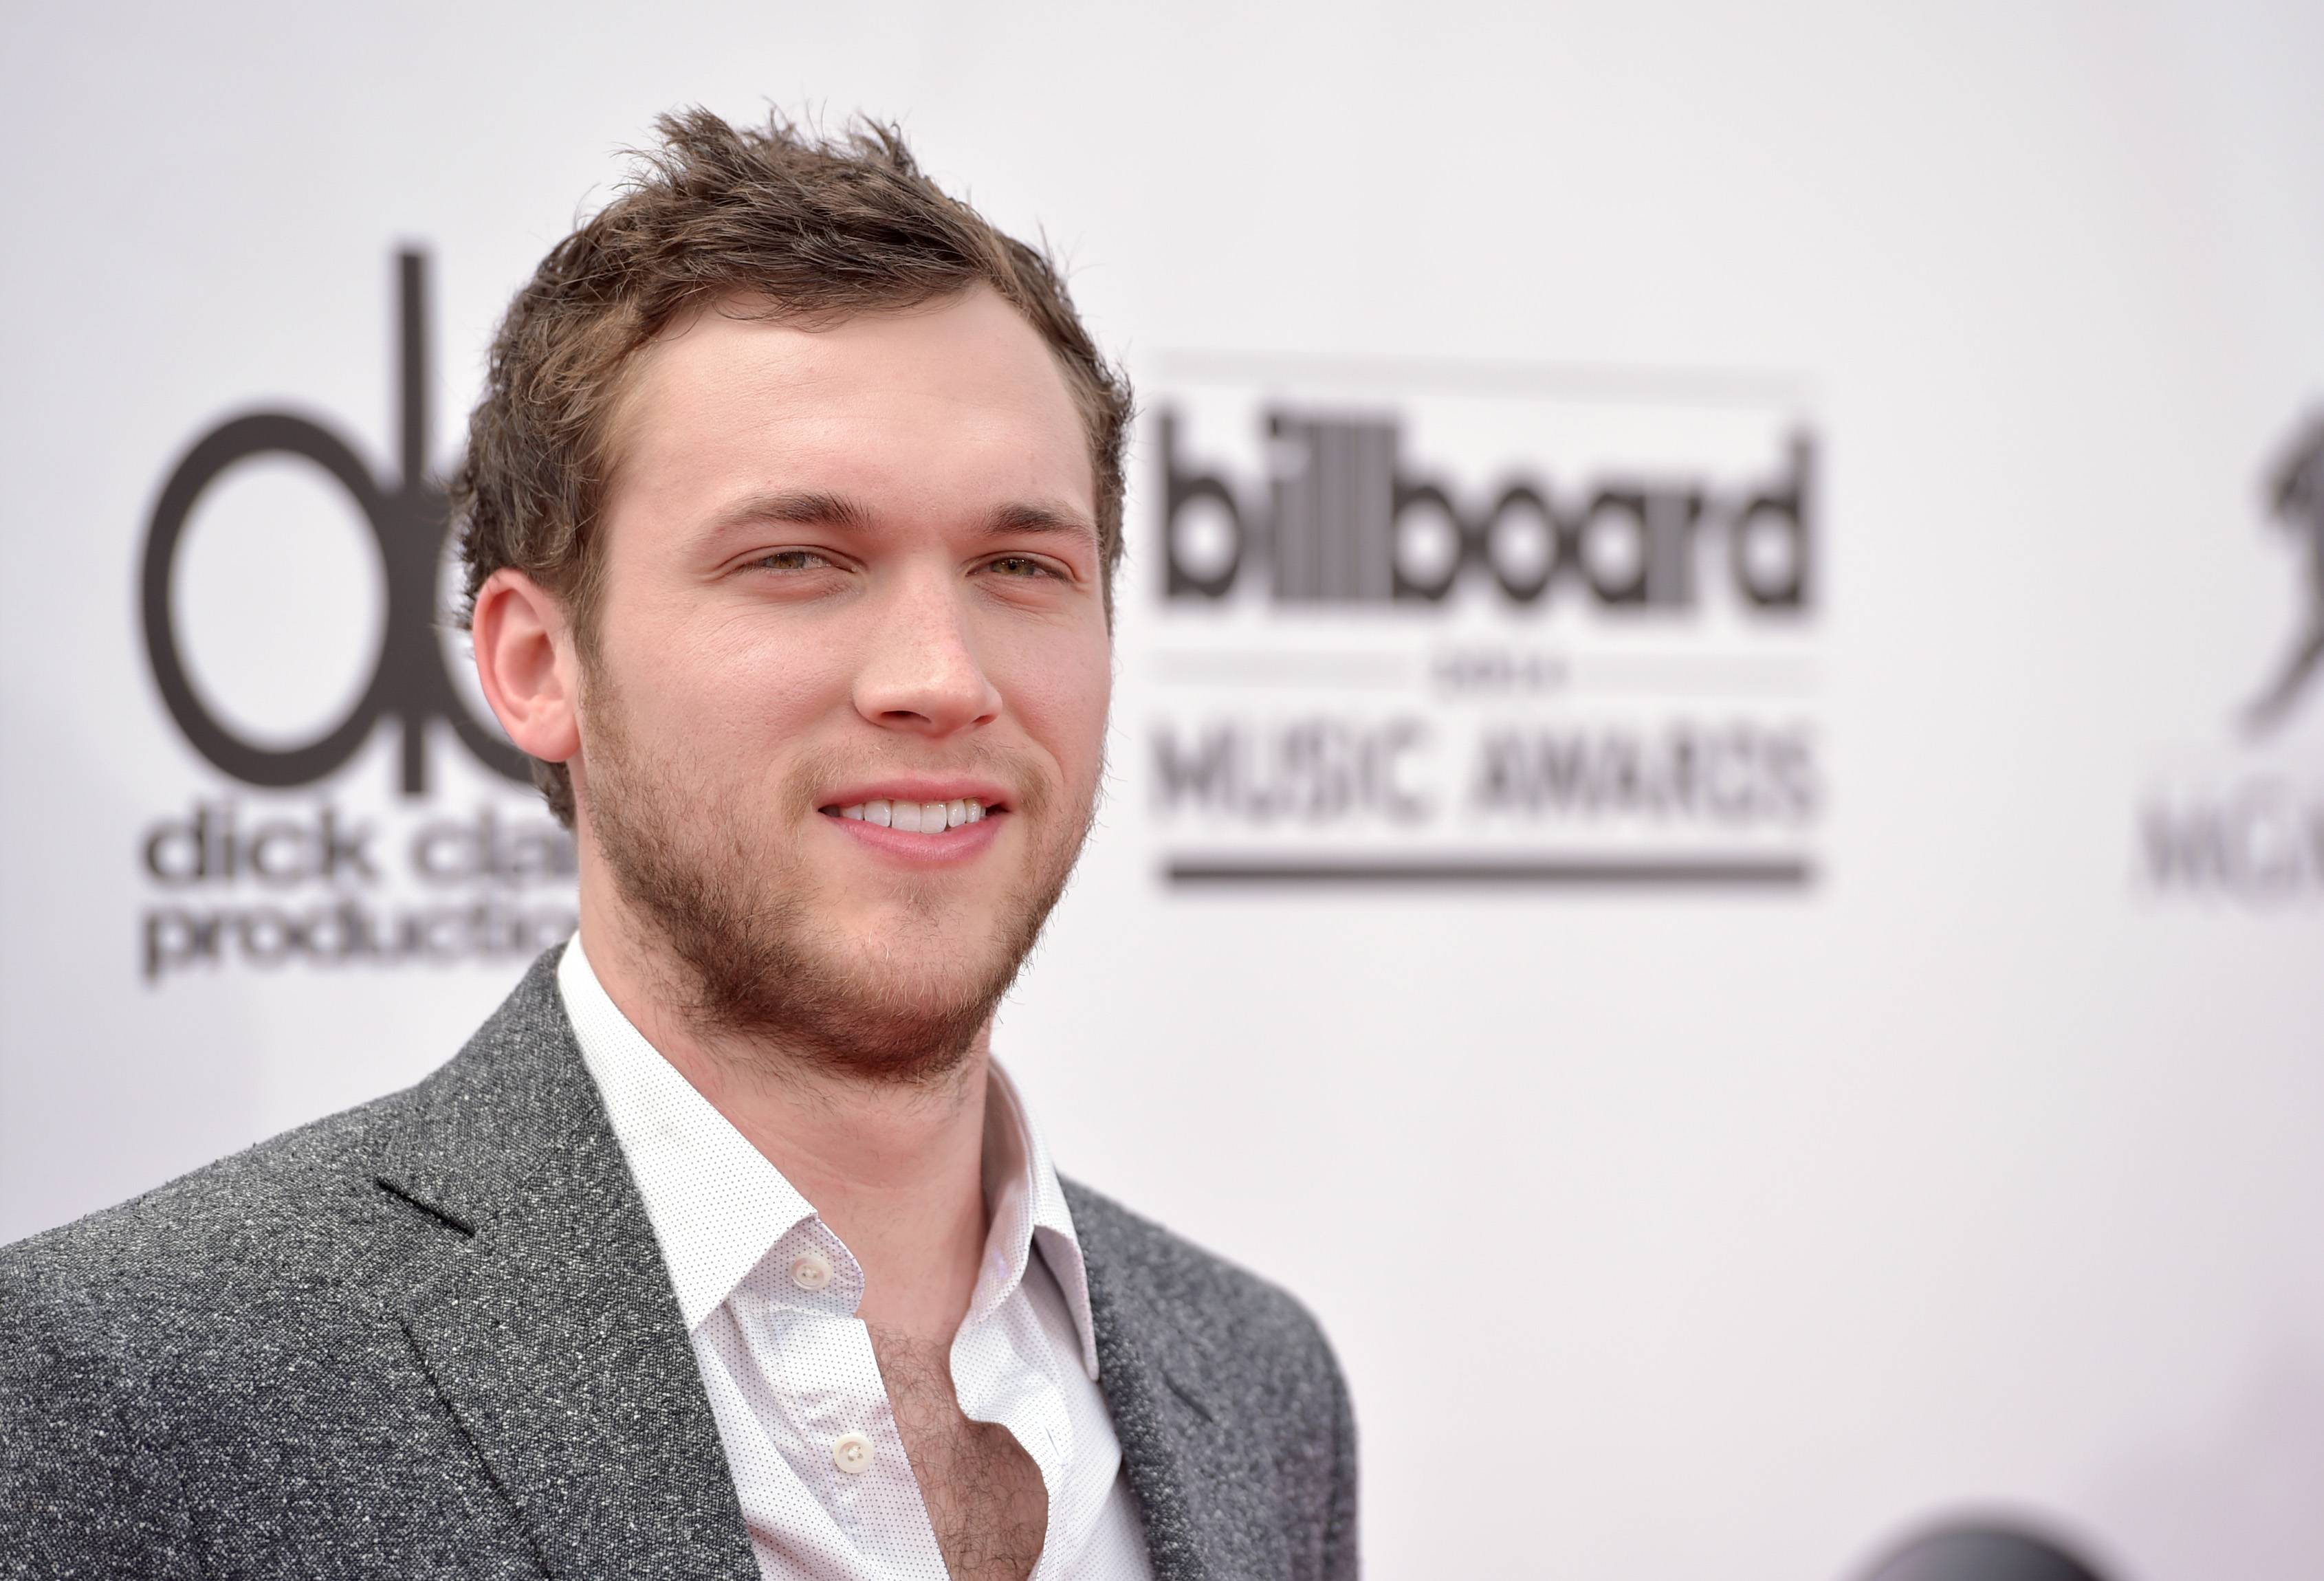 Phillip Phillips arrives at the Billboard Music Awards at the MGM Grand Garden Arena on Sunday, May 18, 2014, in Las Vegas.